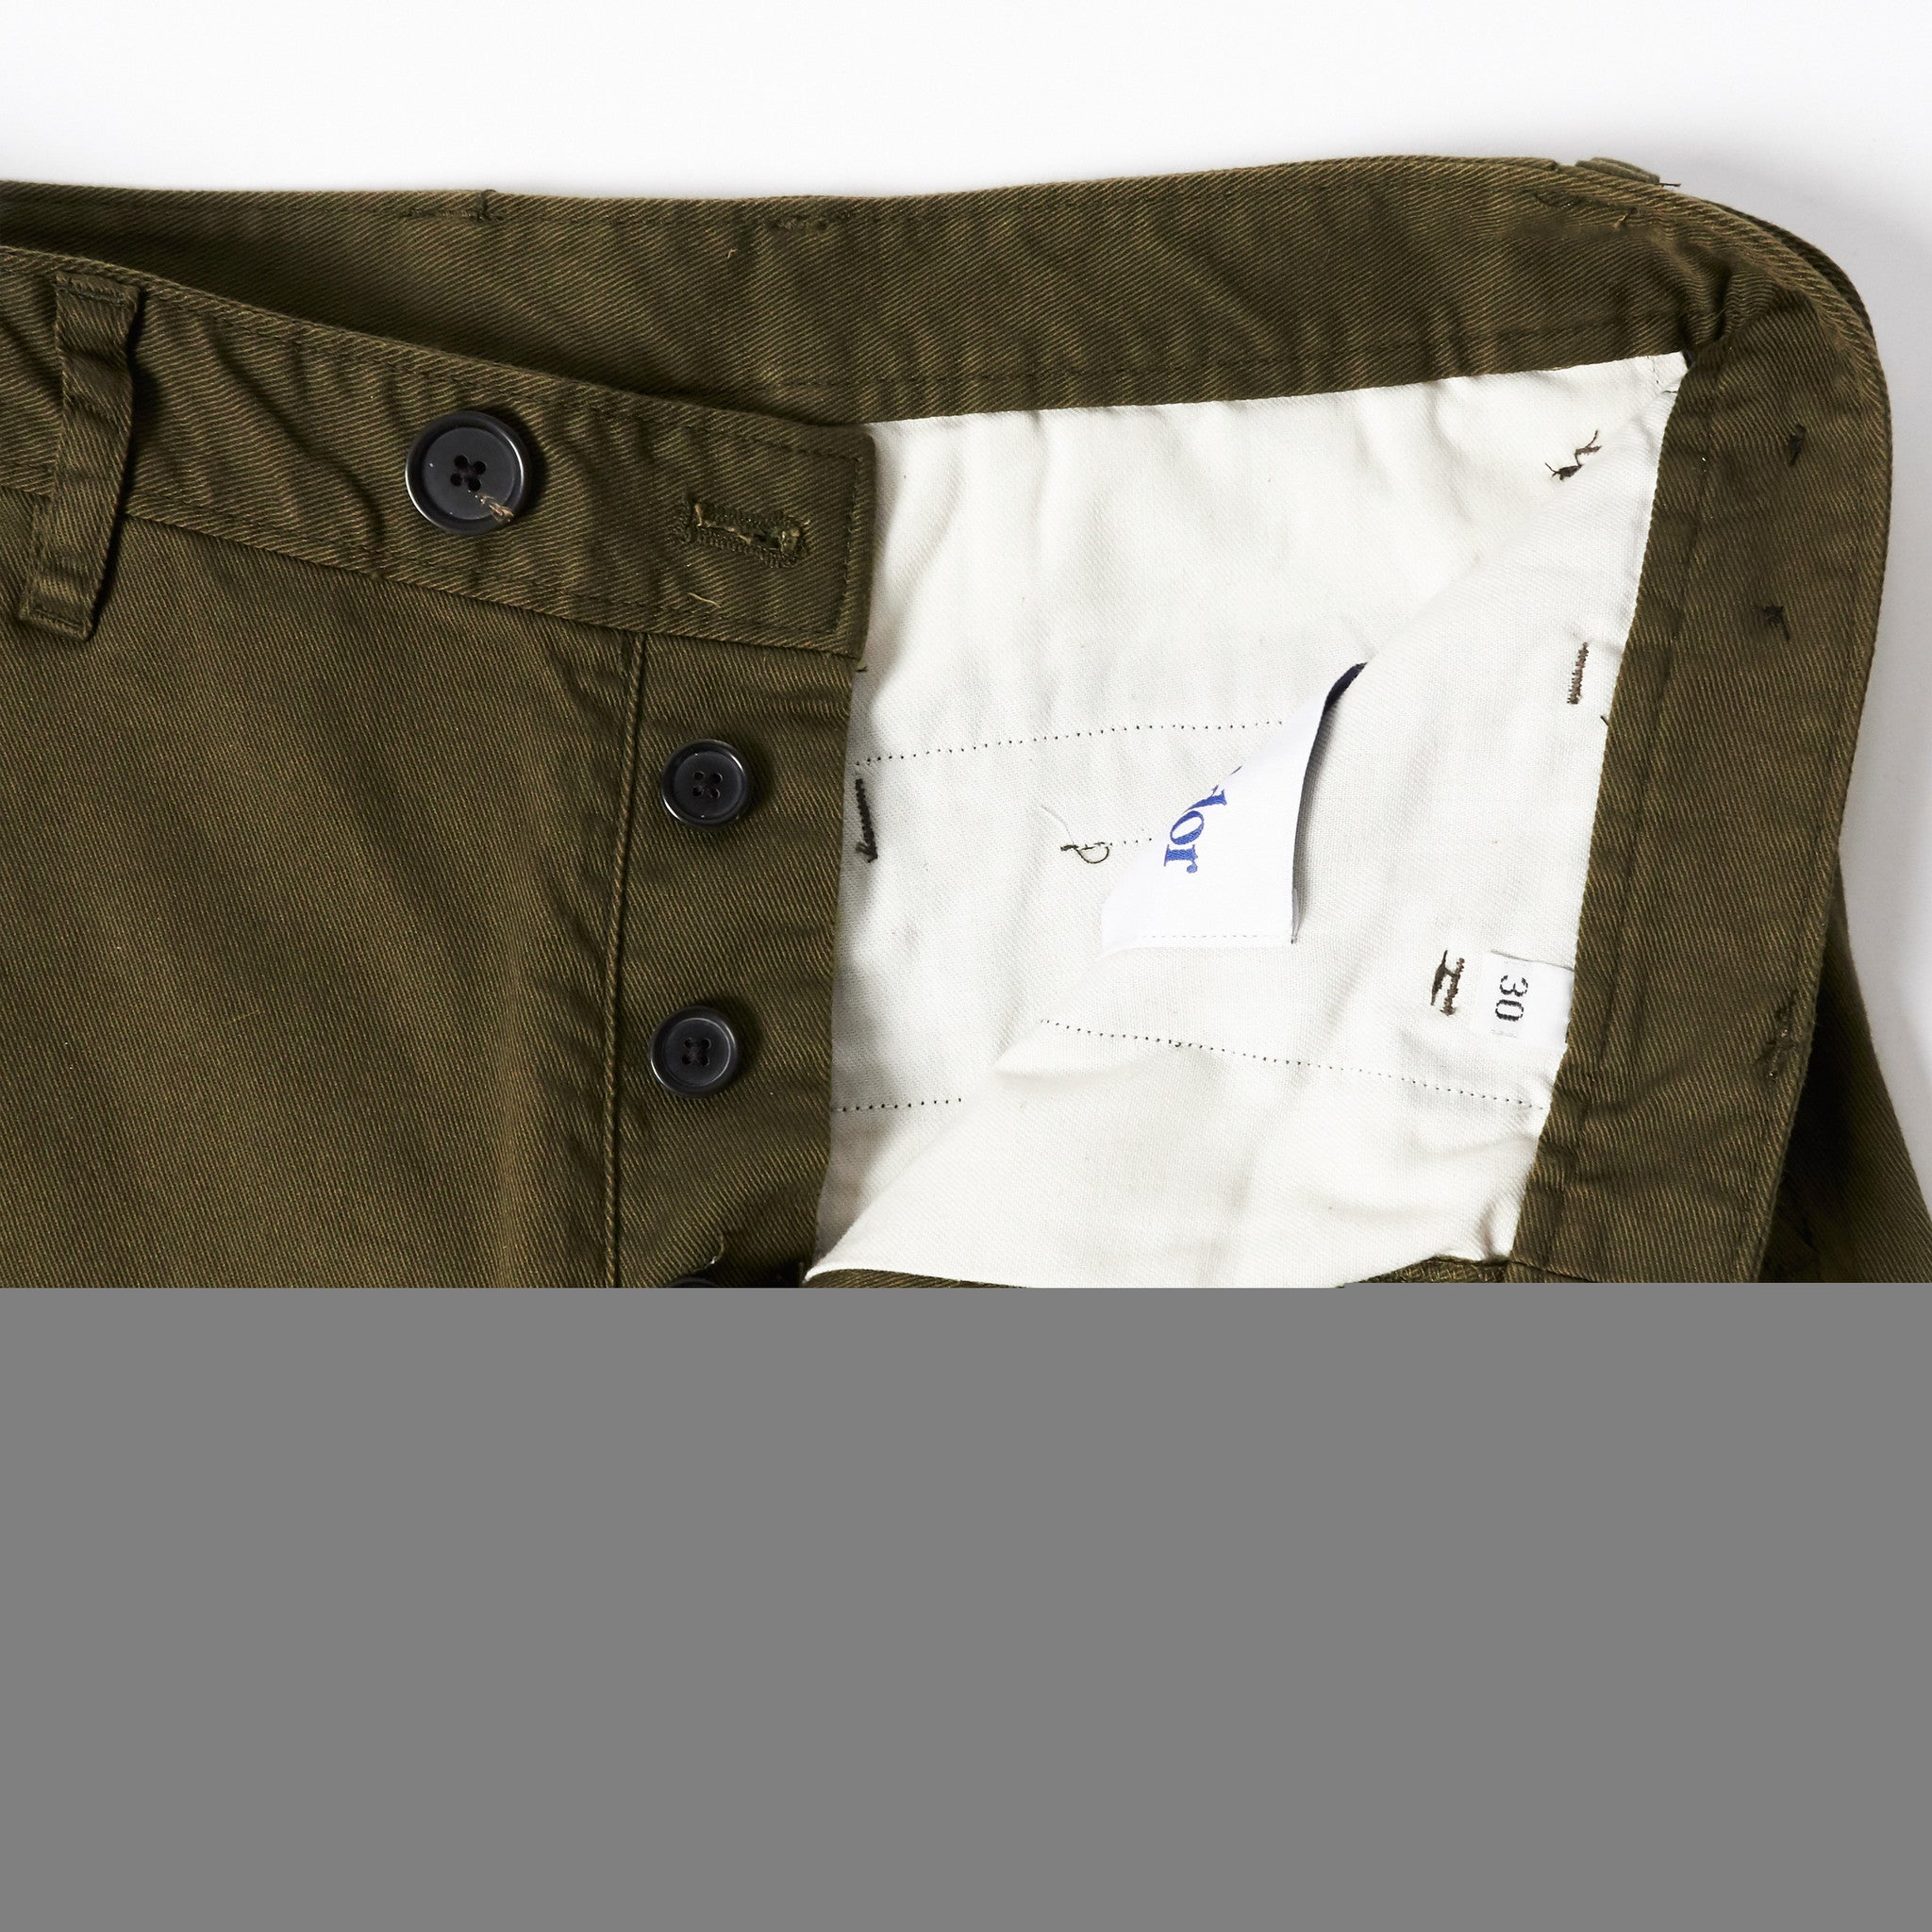 Corridor - Slim Stretch Pants